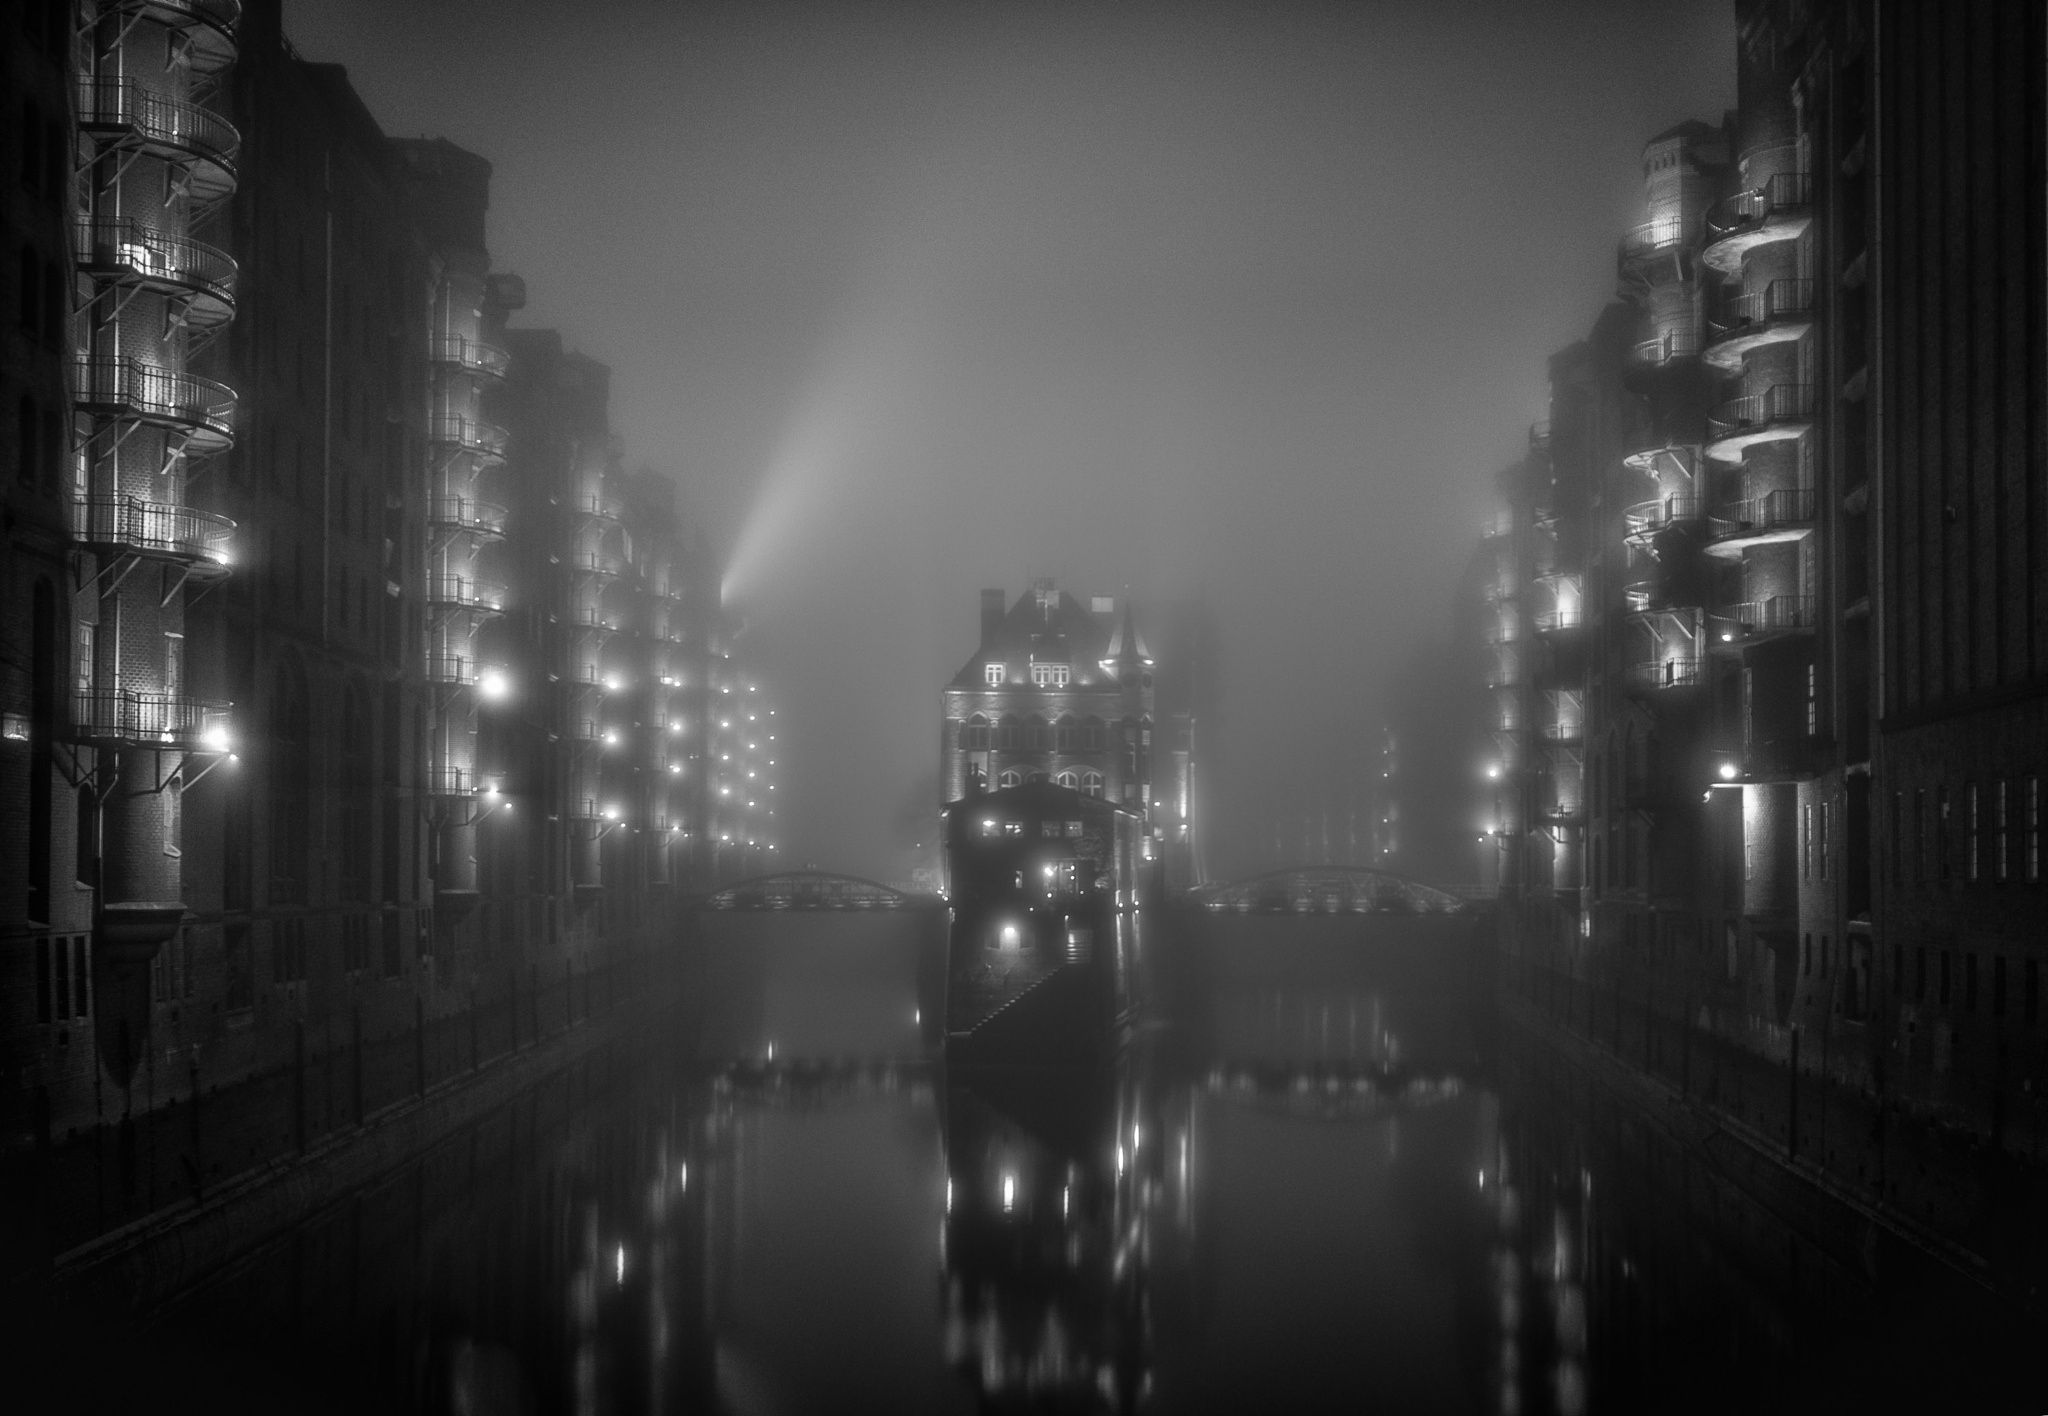 Another mood ... - Tha famous Hamburger Wasserschloss in the old warehouse district in a different mood. One of the foggy November nights...  ---  Das Hamburger Wasserschloss in einer anderen Stimmung.